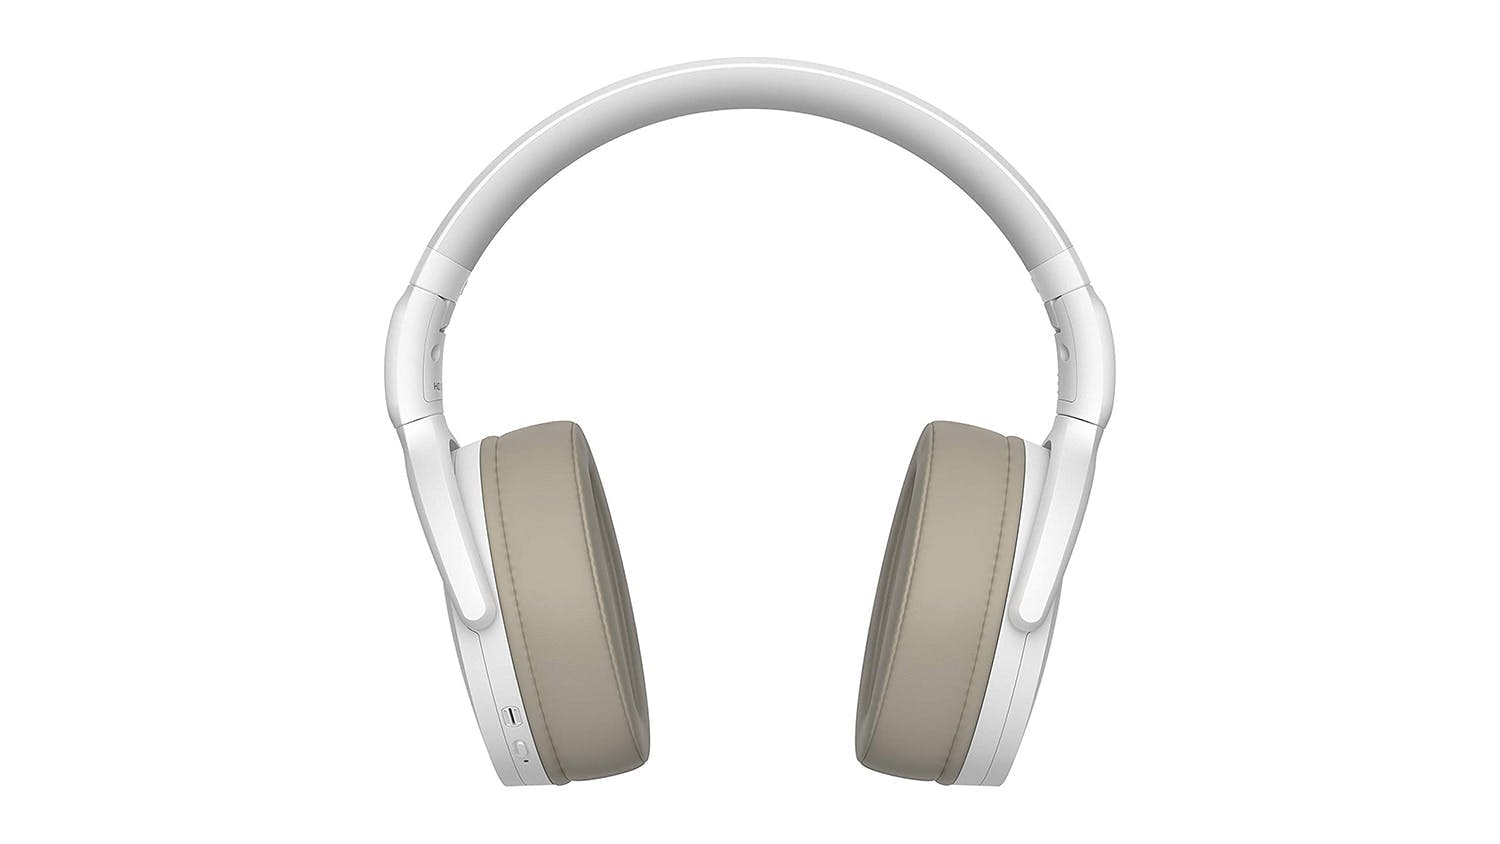 Sennheiser HD350 Wireless Bluetooth Over-Ear Headphones - White